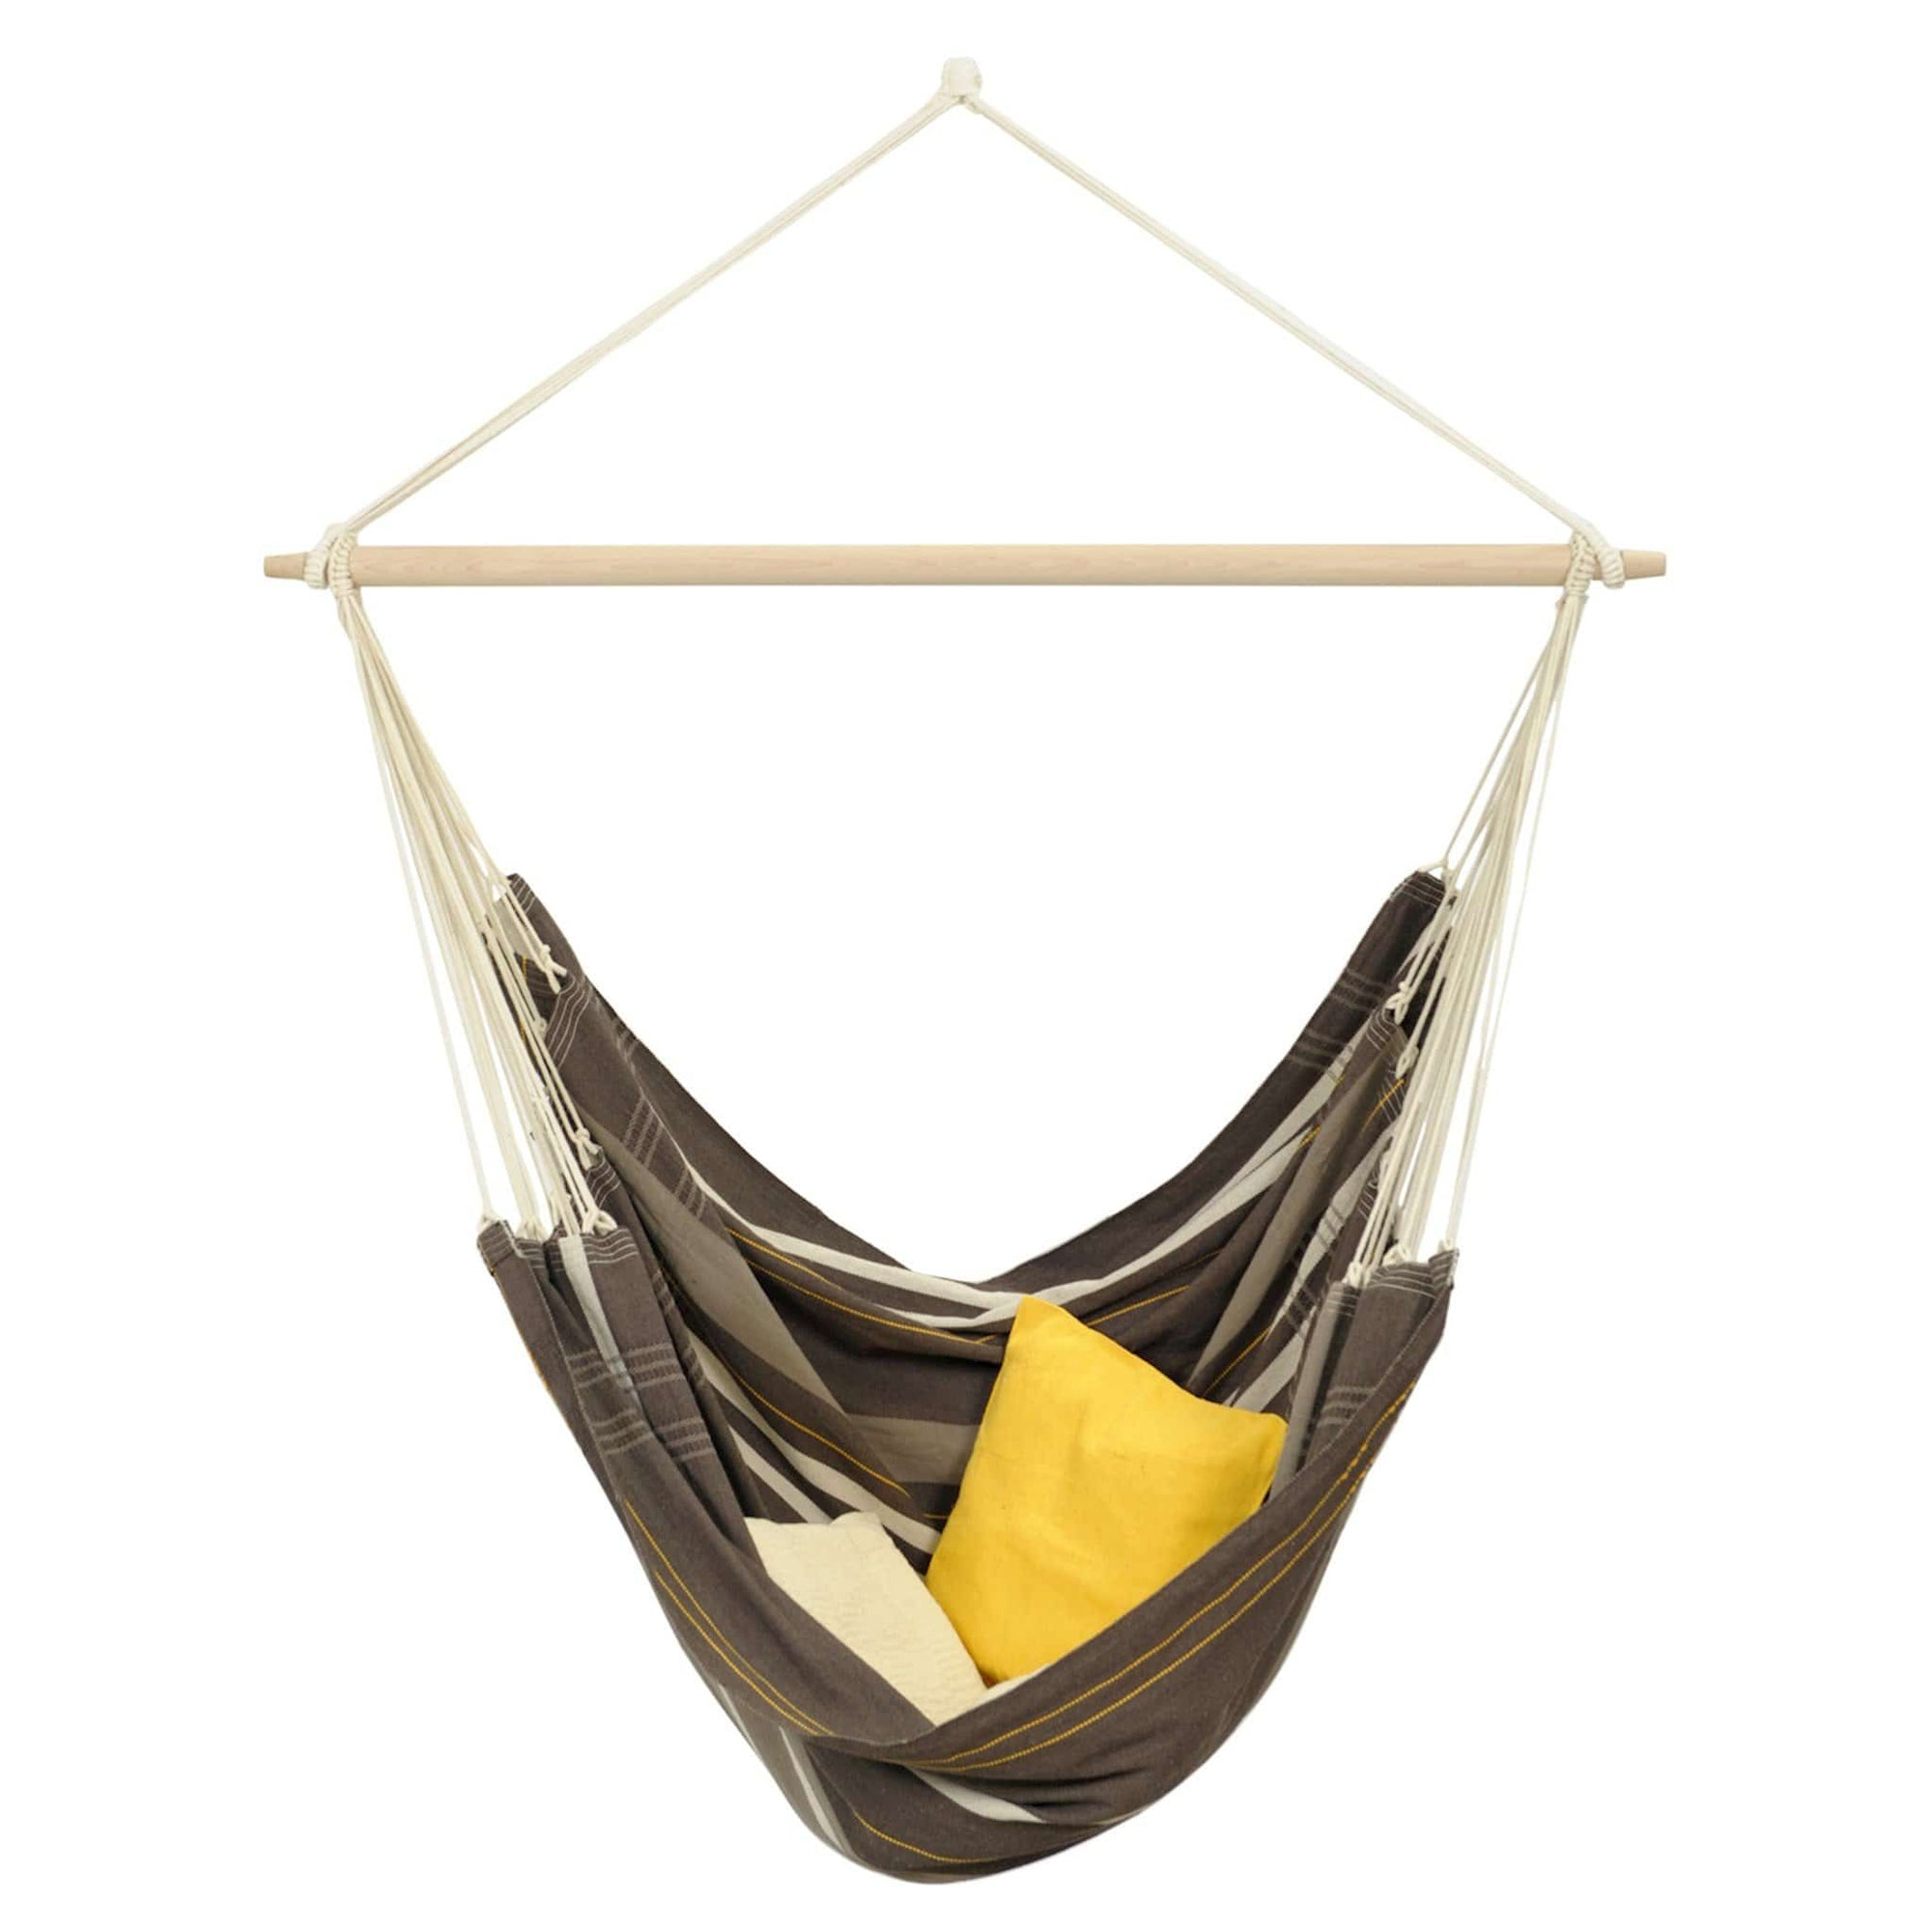 Large hammock chair with wooden spreader bar